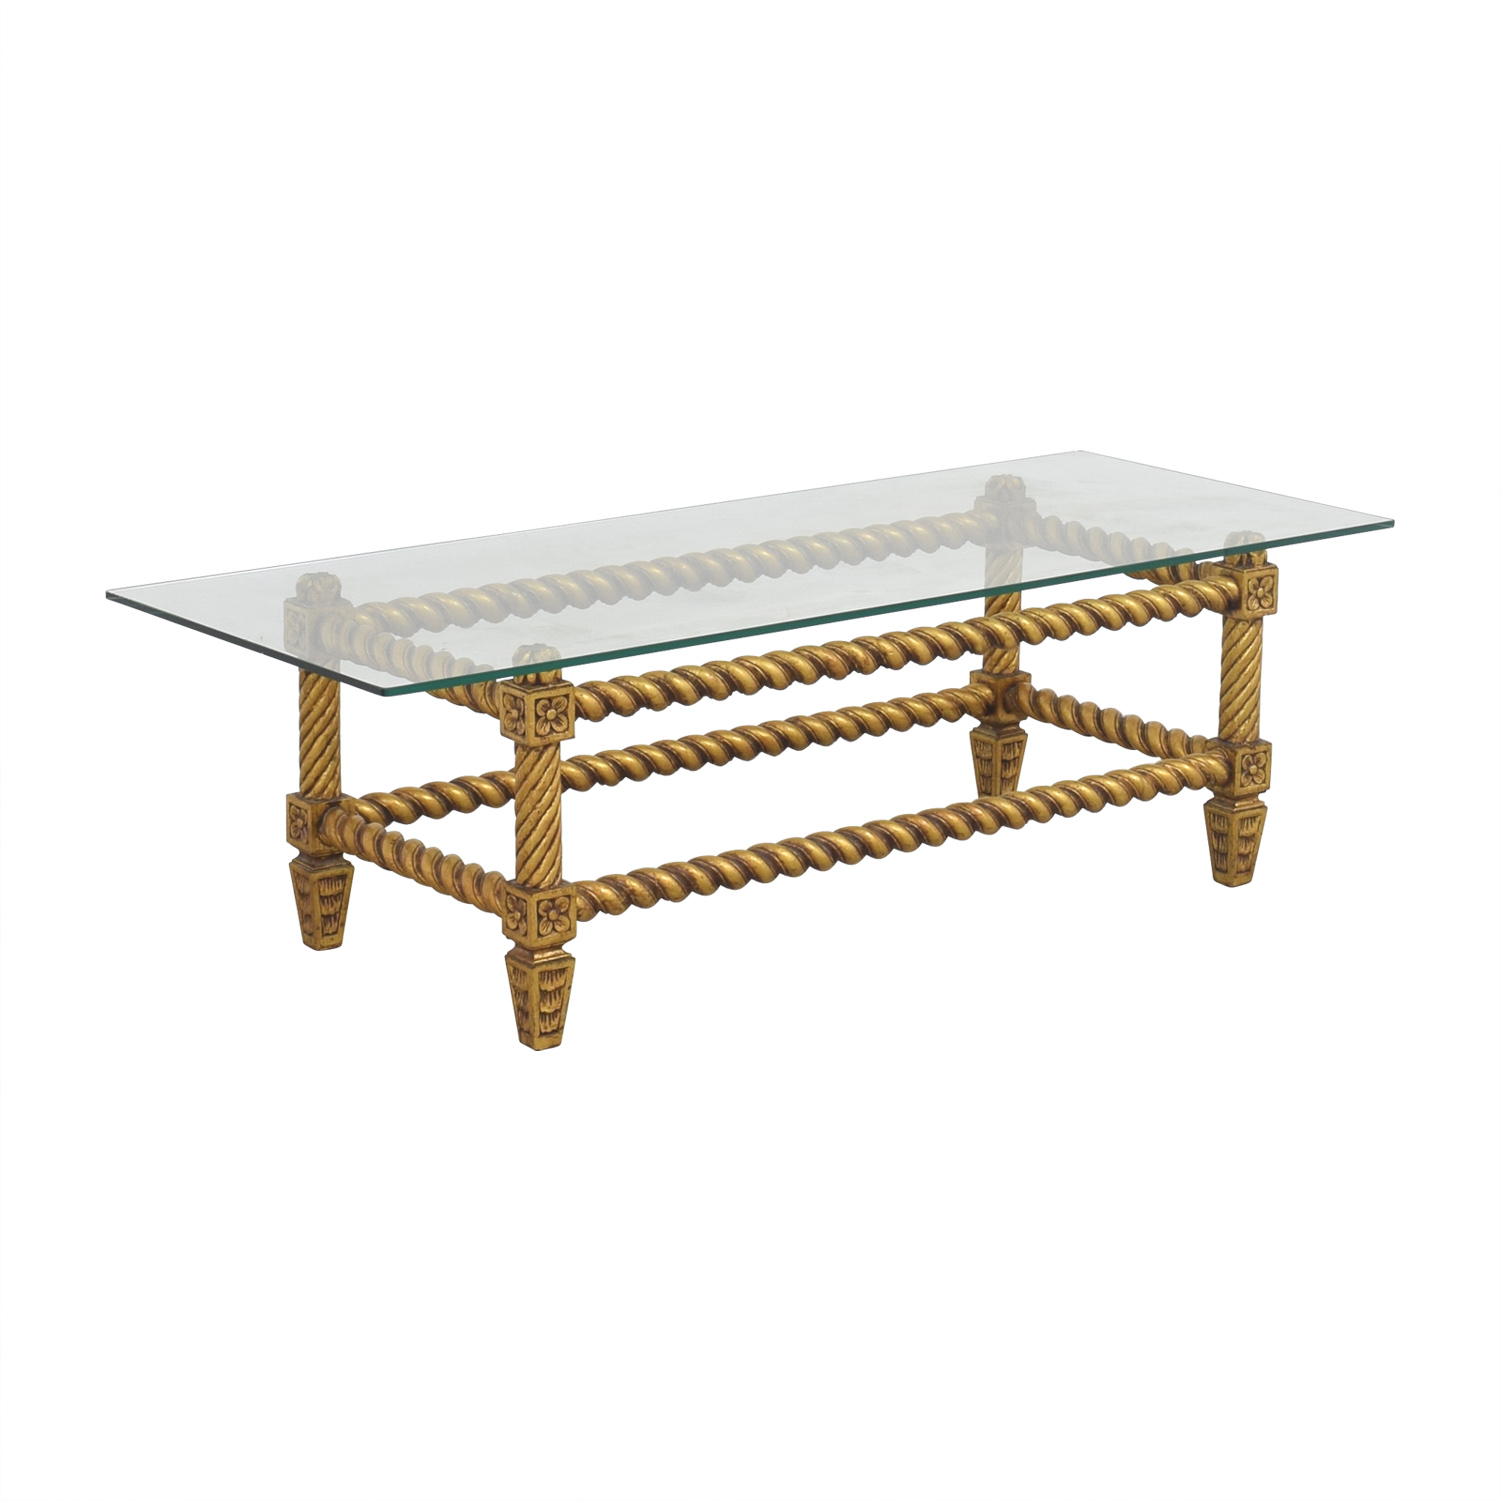 Antique Gold Coffee Table: Antique Glass And Gold Framed Coffee Table / Tables